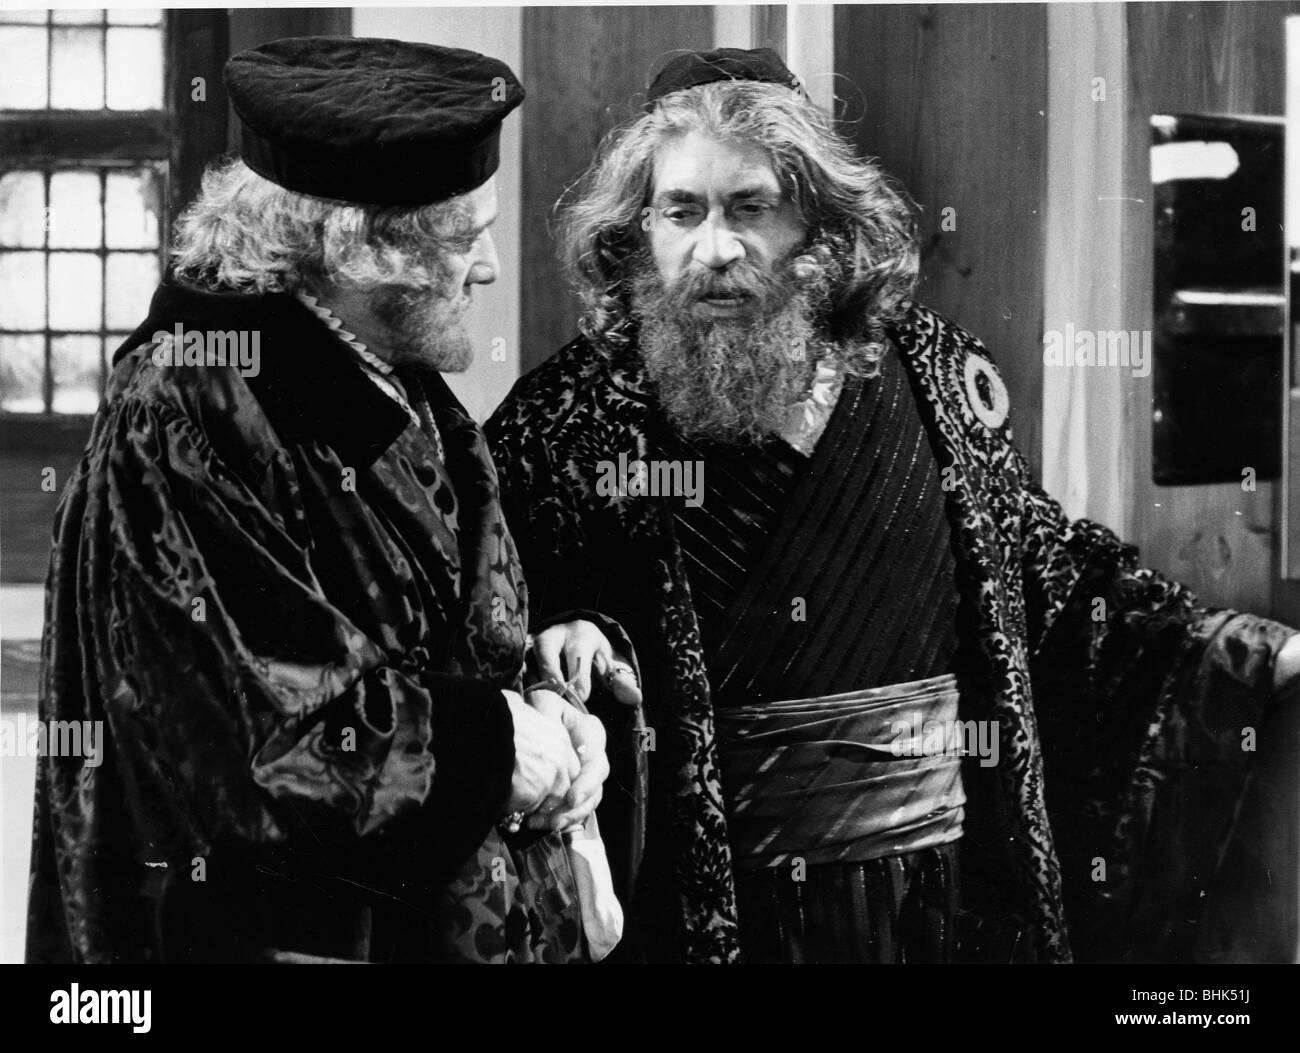 Frank Finlay (1926- ), British actor, as Shylock in 'The Merchant of Venice'. - Stock Image